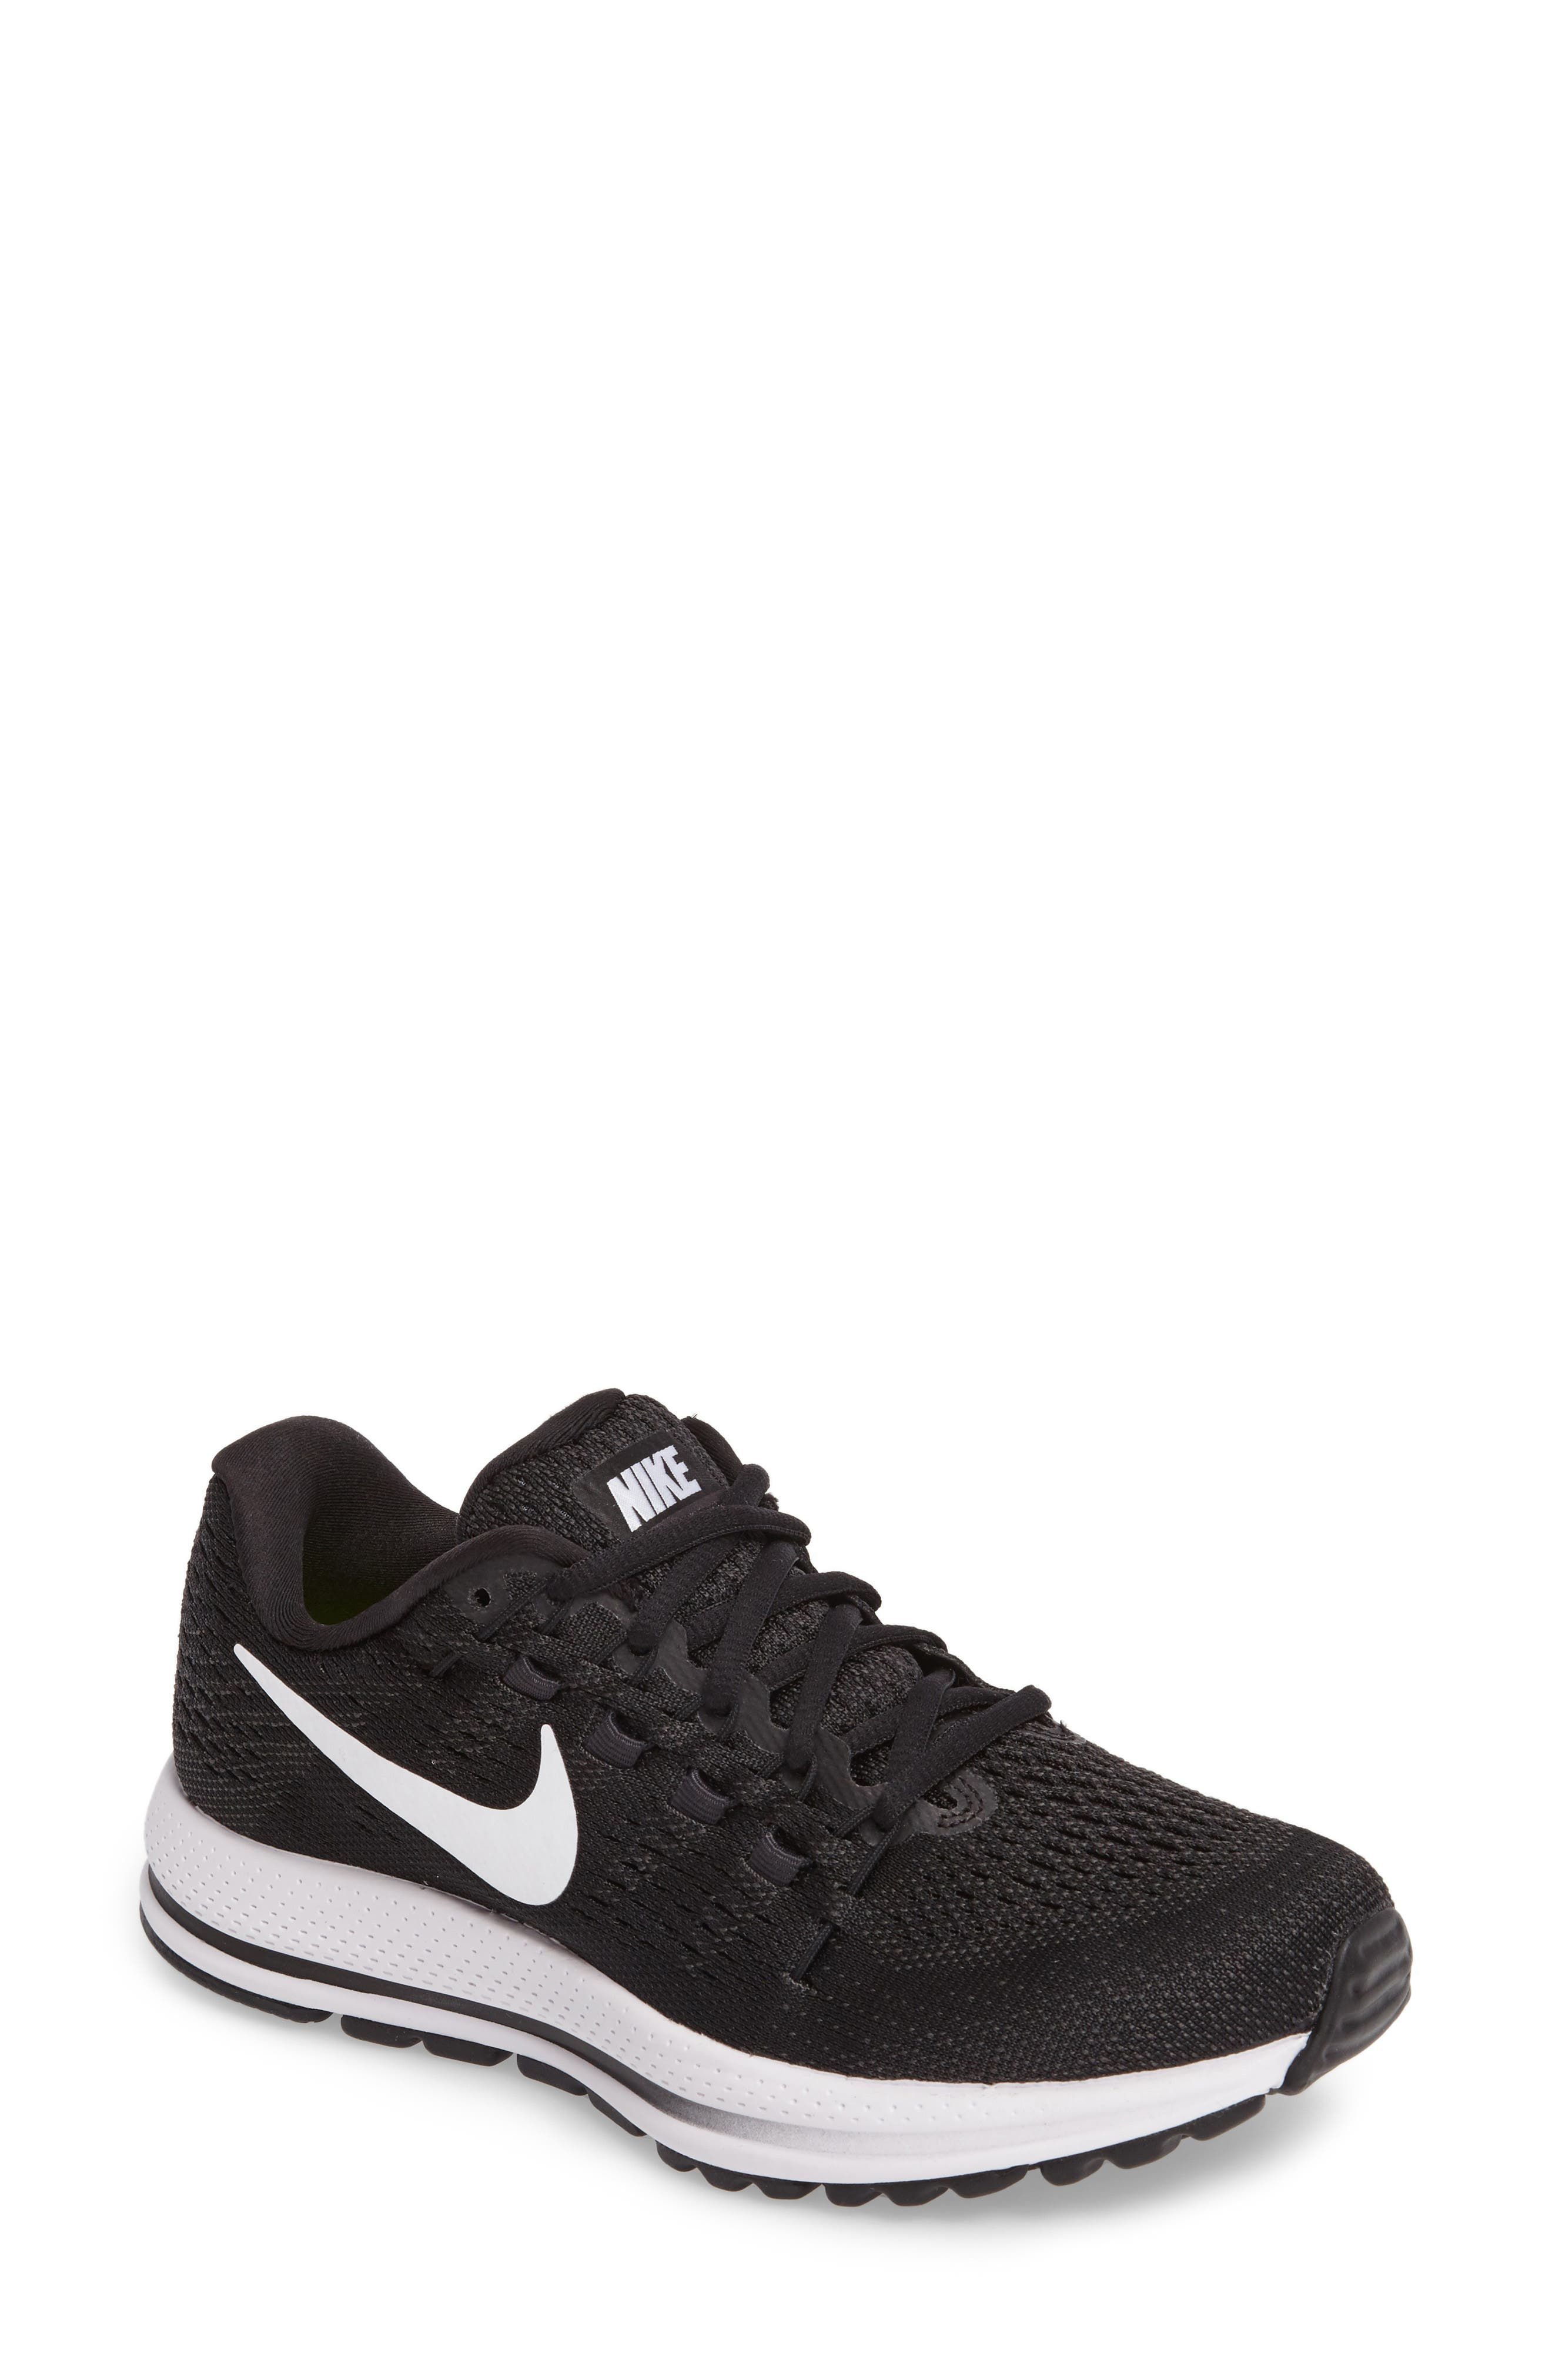 NIKE Air Zoom Vomero 12 Running Shoe, Main, color, 001